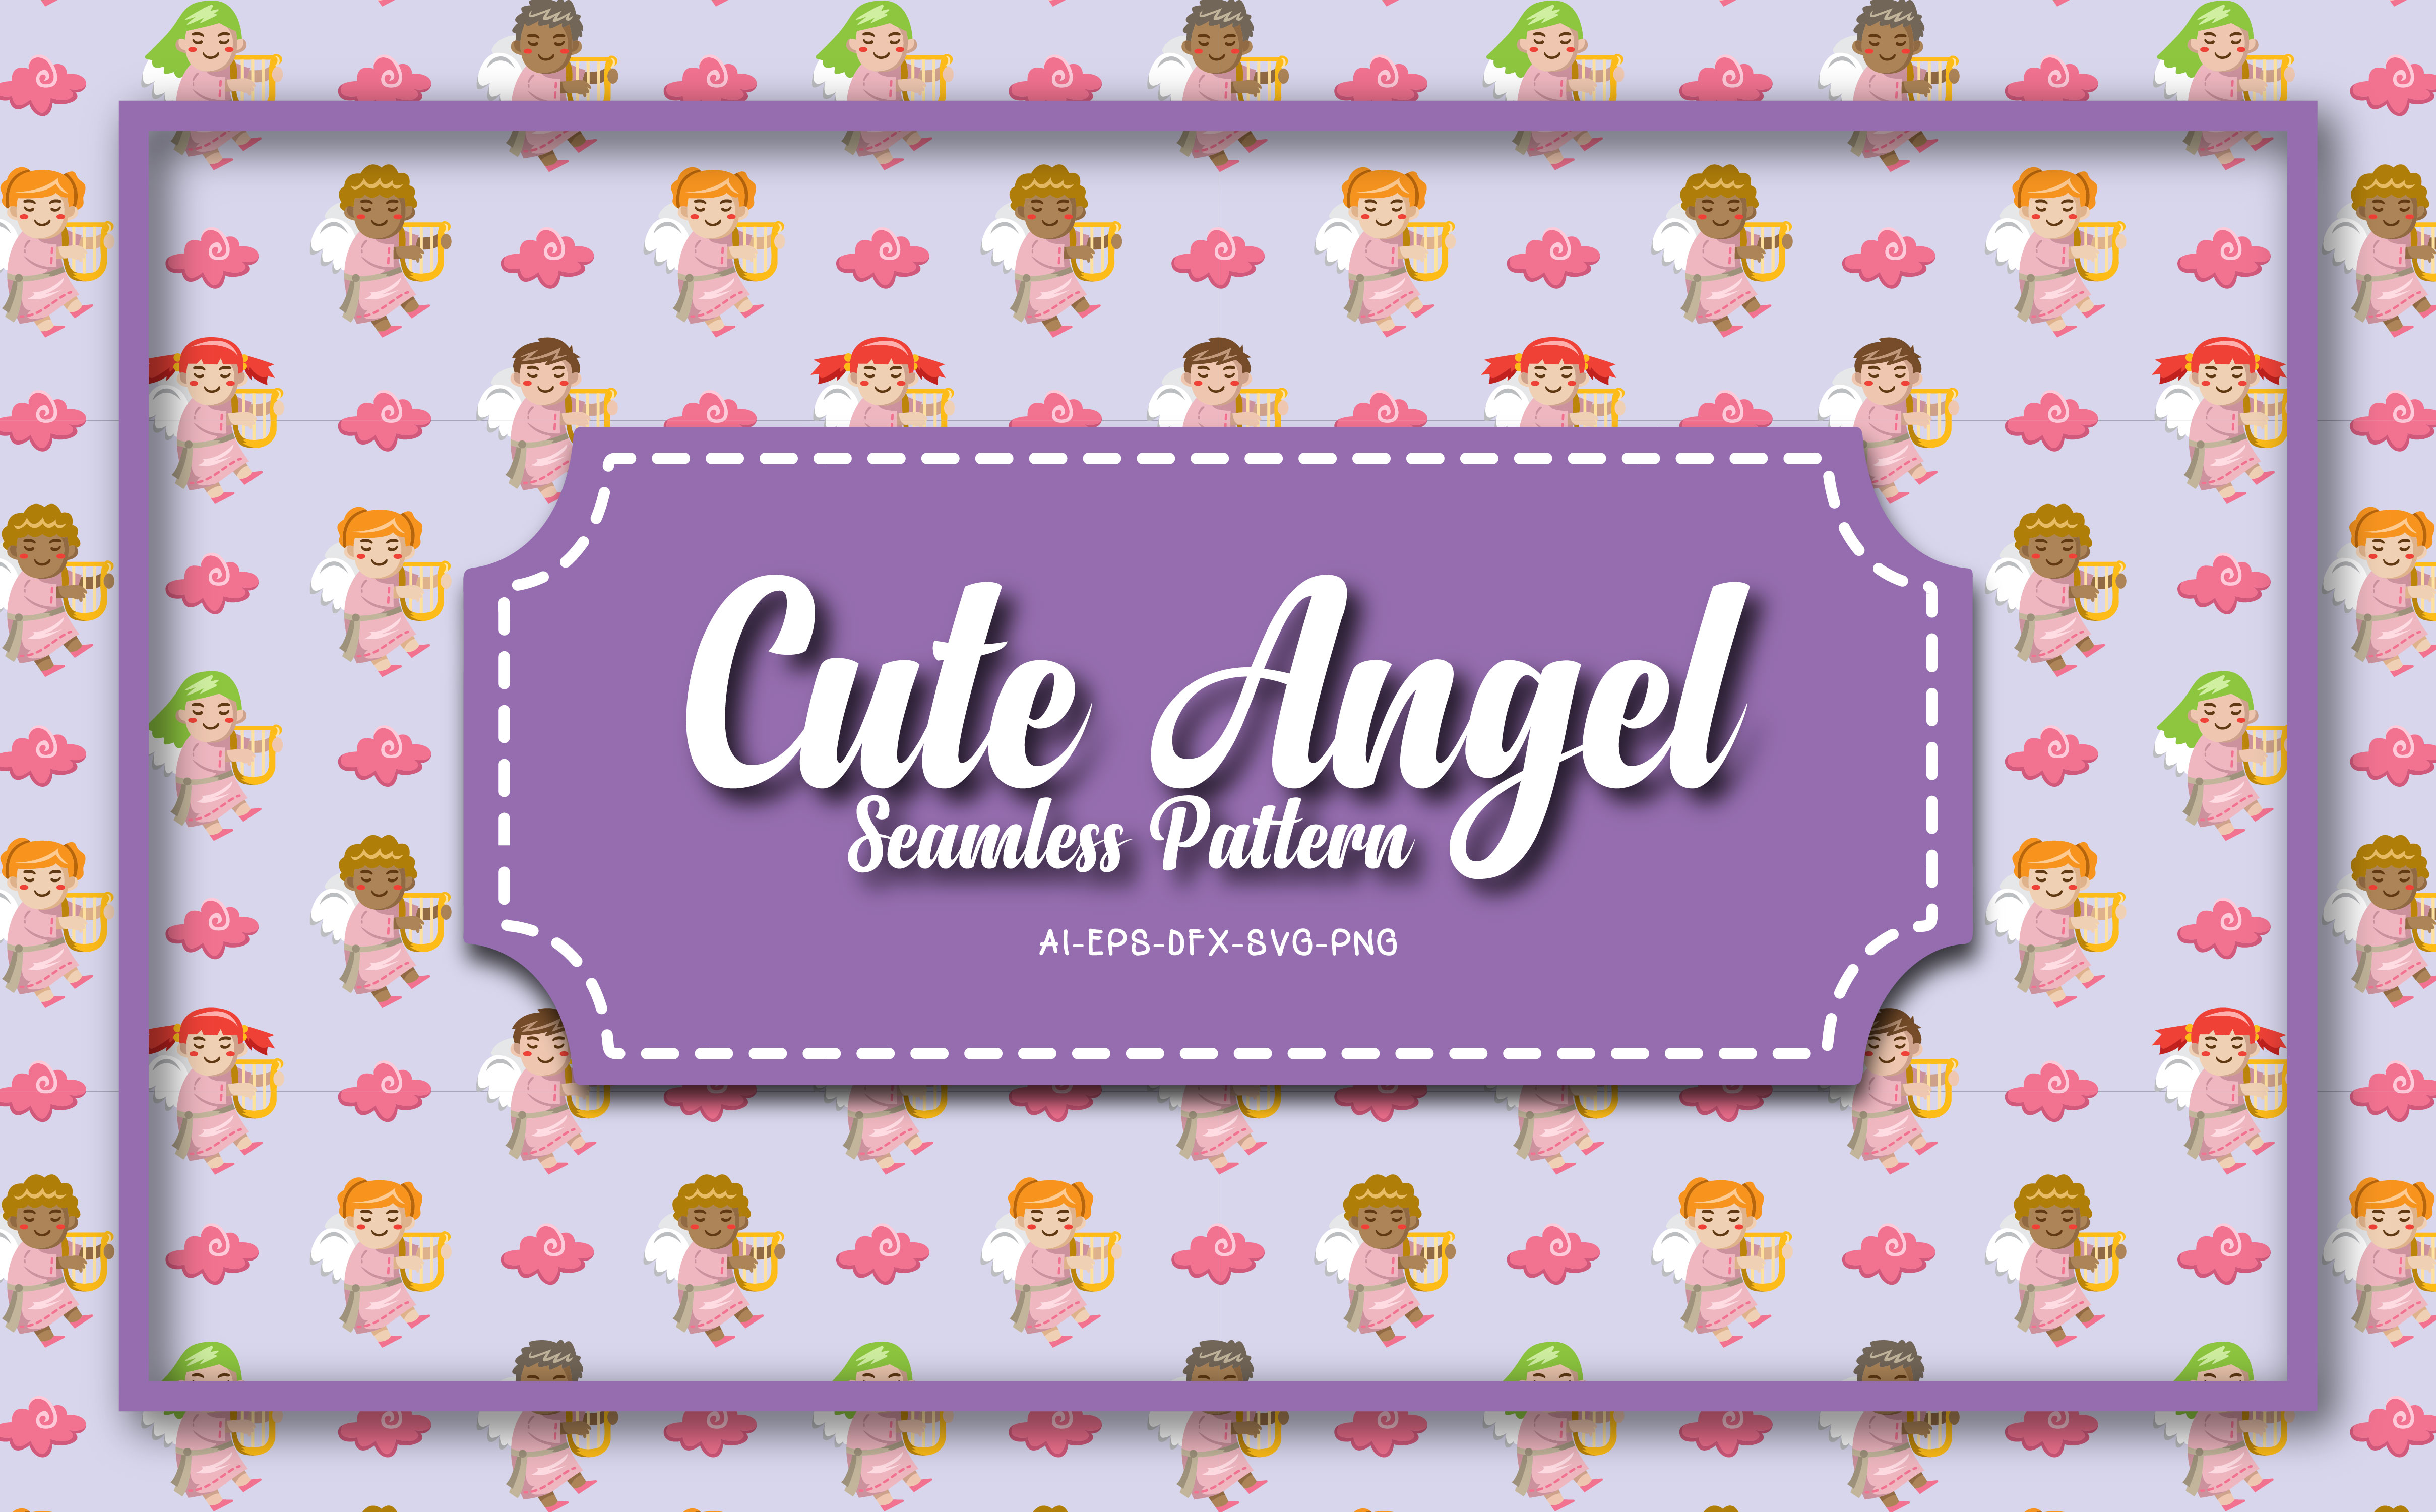 Download Free Seamless Patterns Cute Angel 5 Graphic By Bayu Baluwarta for Cricut Explore, Silhouette and other cutting machines.